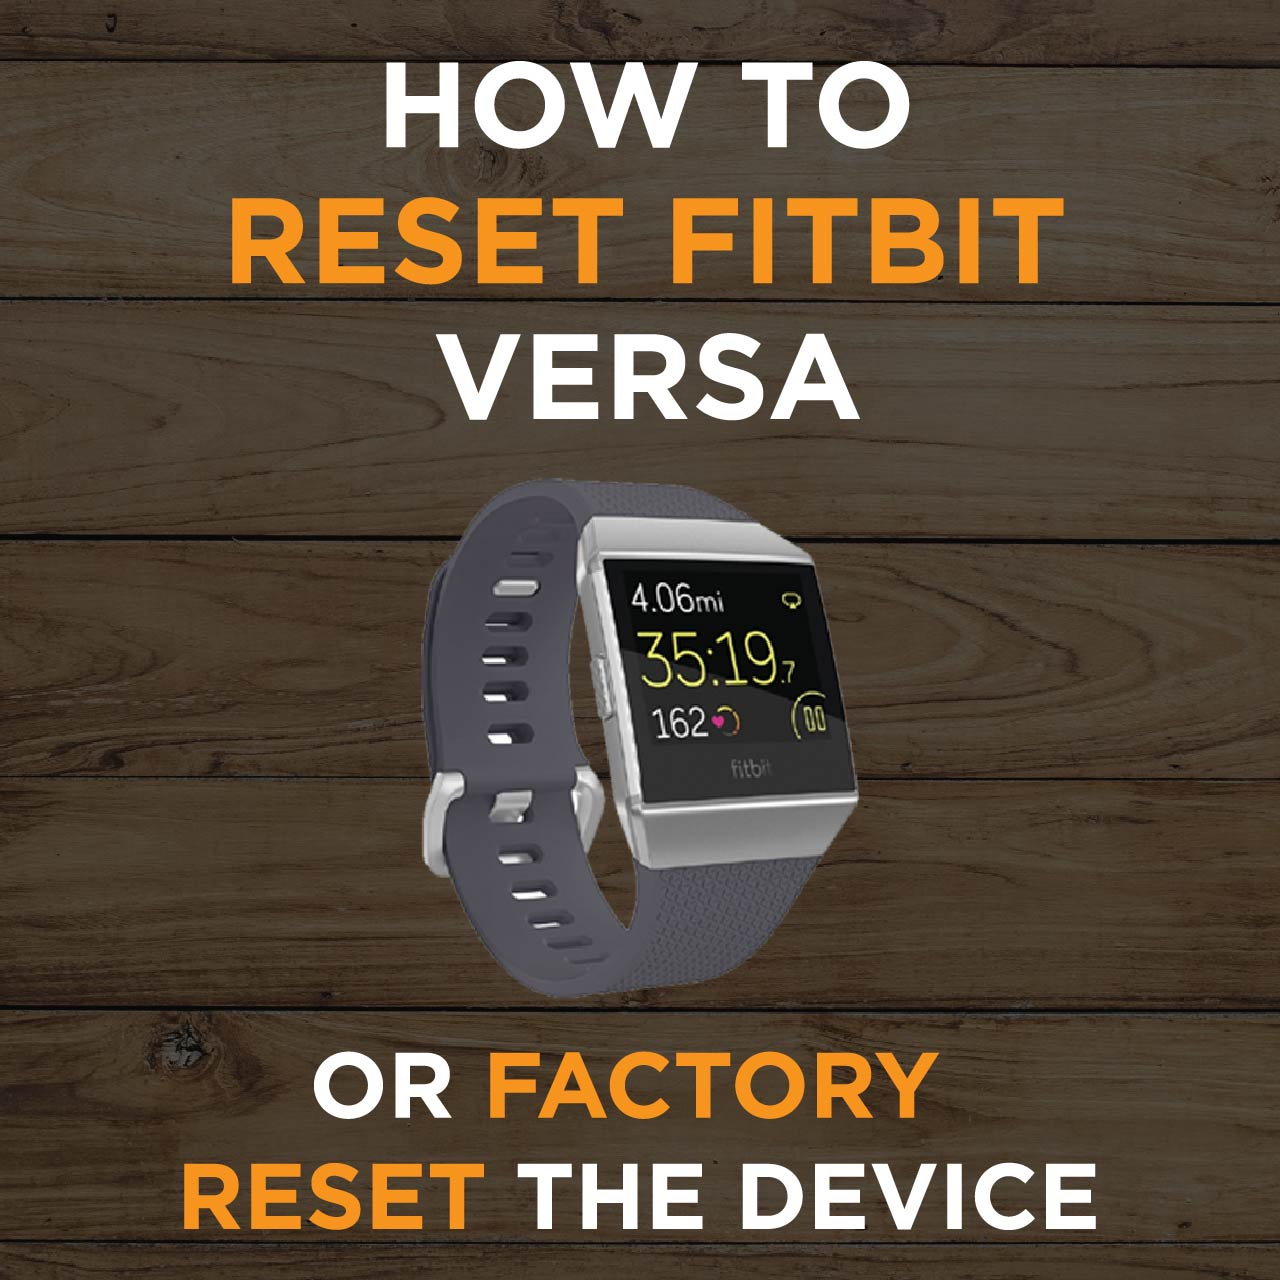 How To Factory Reset Fitbit Versa